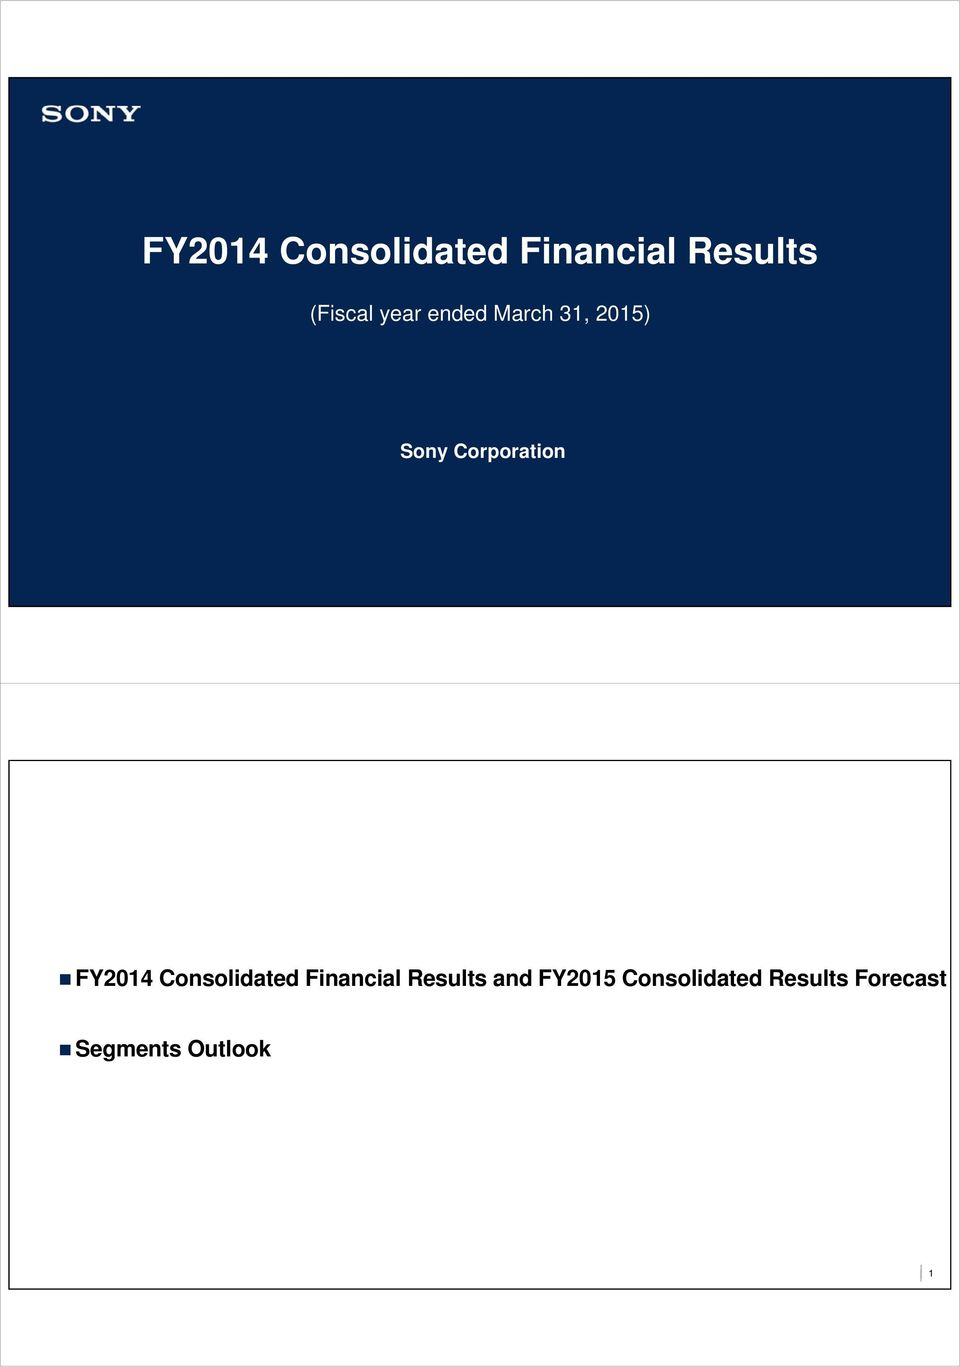 FY214 Consolidated Financial Results and